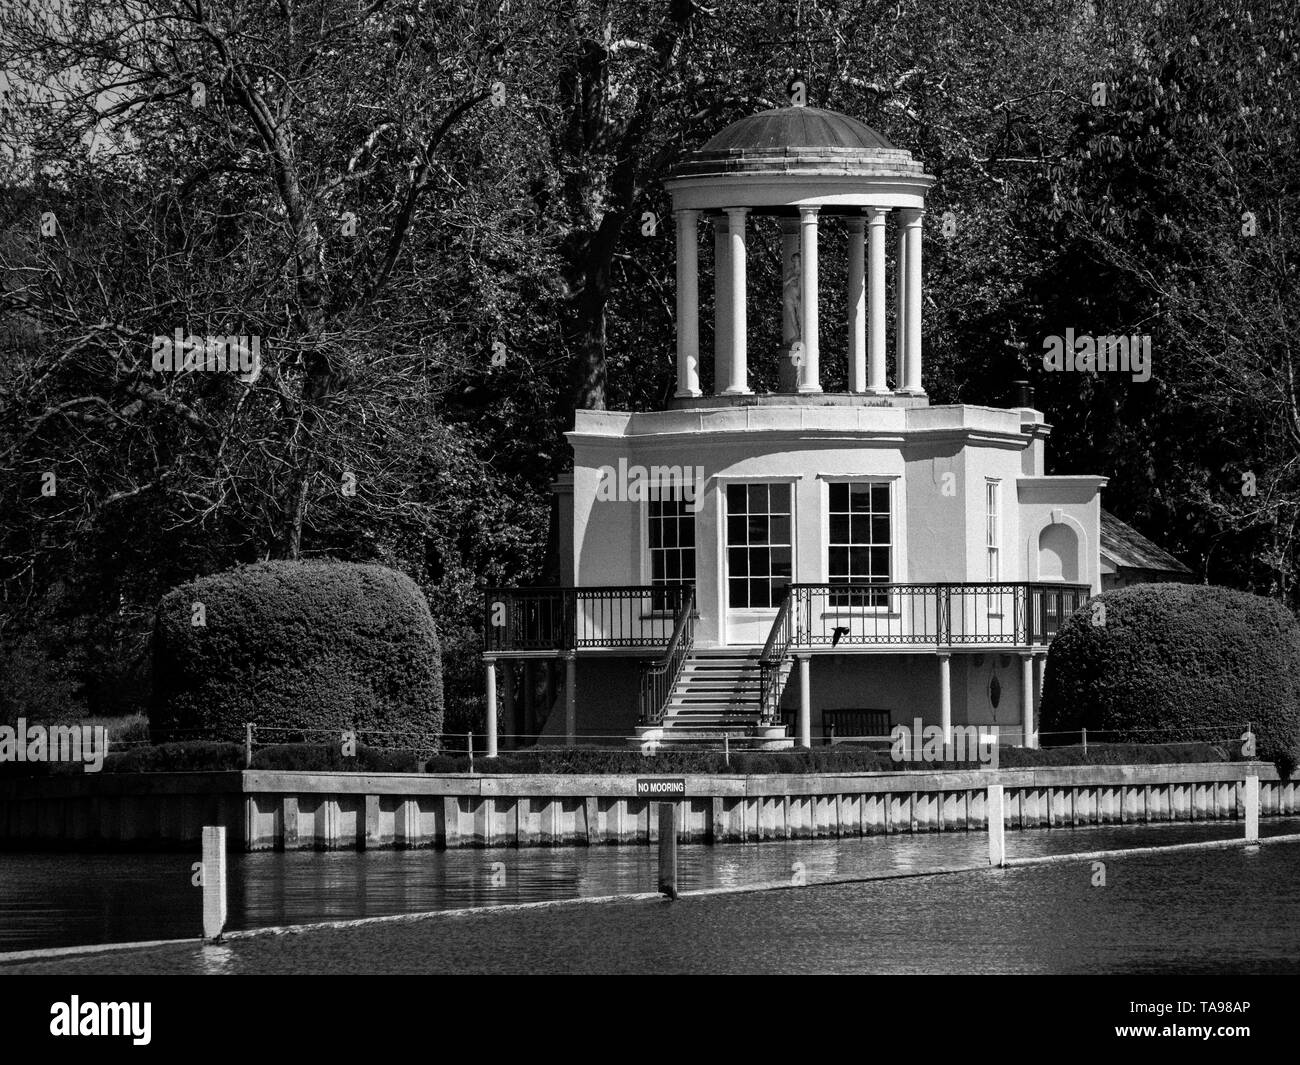 Black and White Photography of, Temple Island, Starting Point for  Henley Royal Regatta, Henley-on-Thames, Oxfordshire, England, UK, GB. - Stock Image